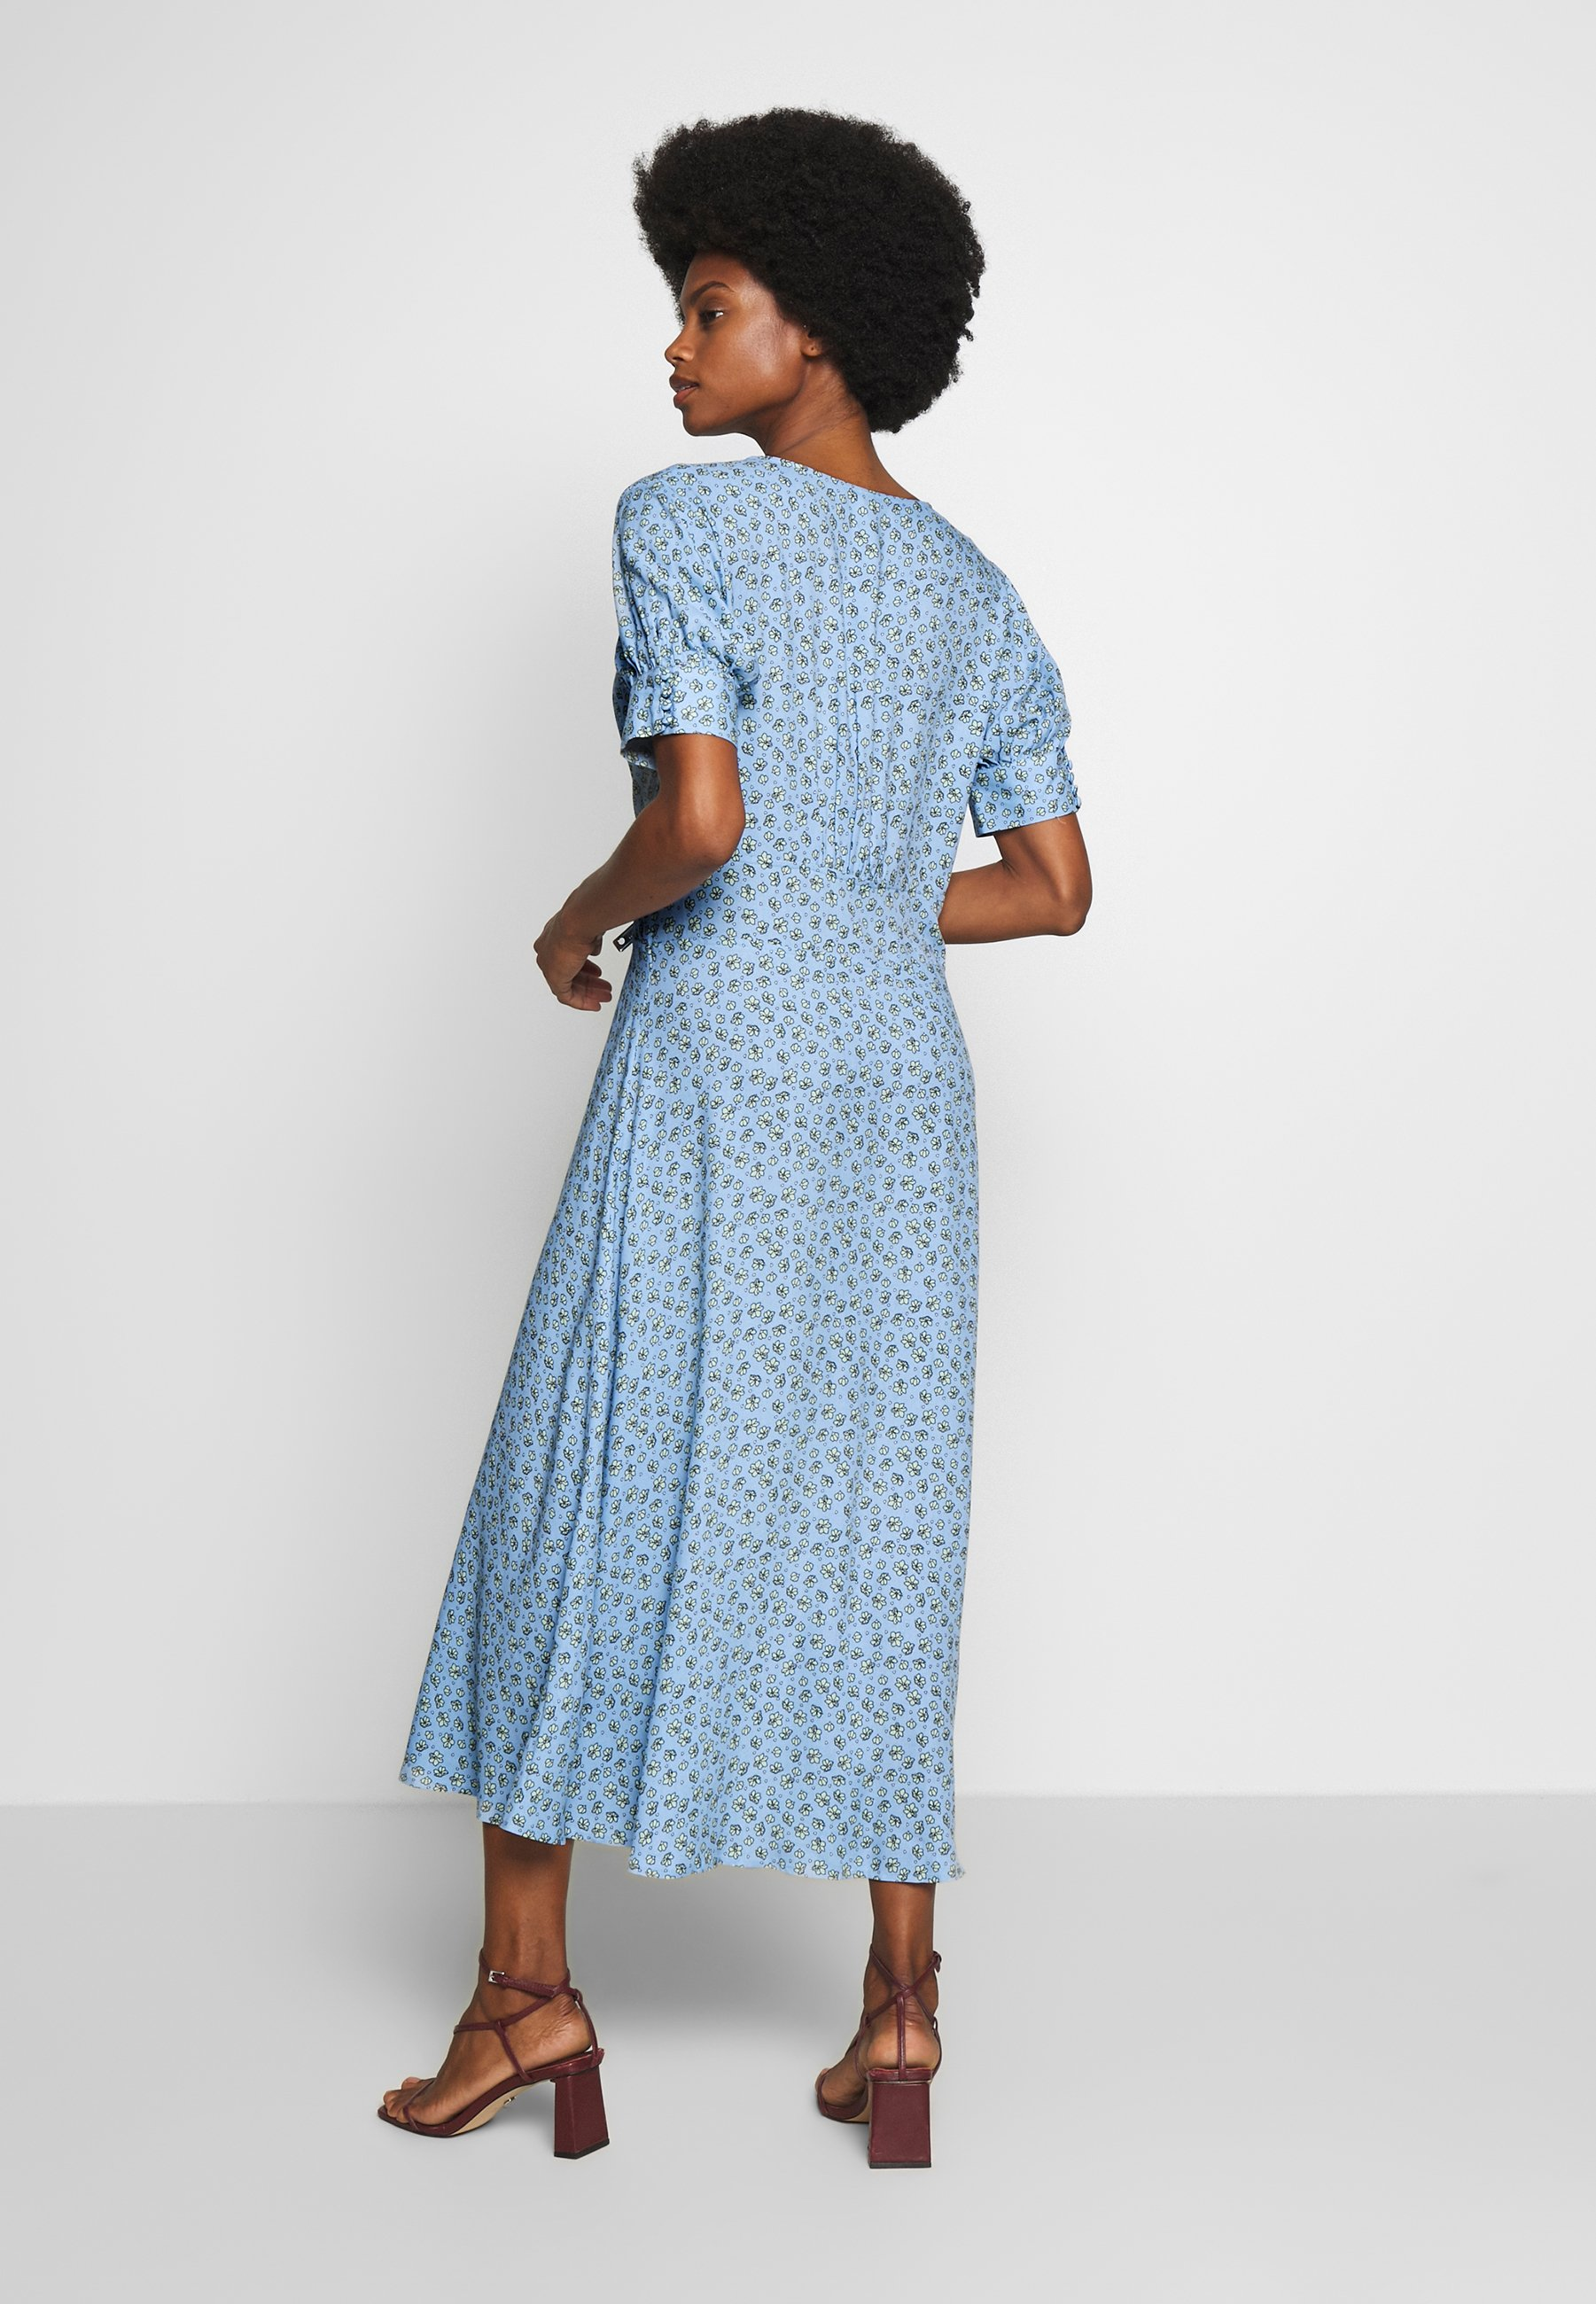 Culture Cuyasmin Dress - Shirt Powder Blue UK